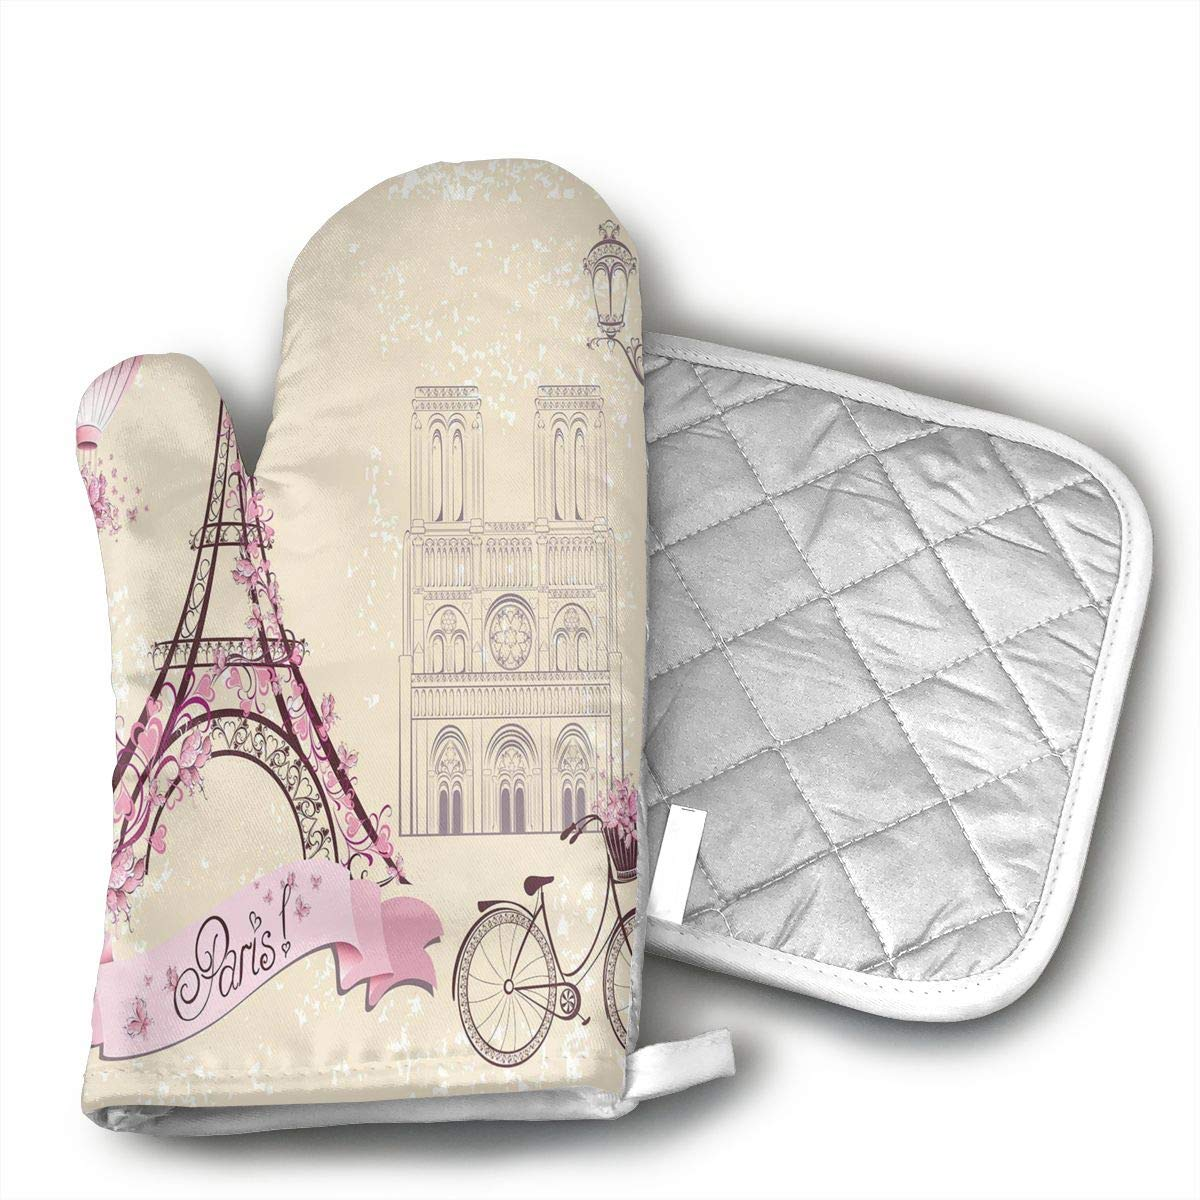 BBQGloves3 Floral Paris Symbols Landmarks Eiffel Tower Hot Air Balloon Bicycle Romantic Couple Shaped Oven Mitts and Pot Holders Set of 2 for Kitchen Set with Cotton Non-Slip Grip